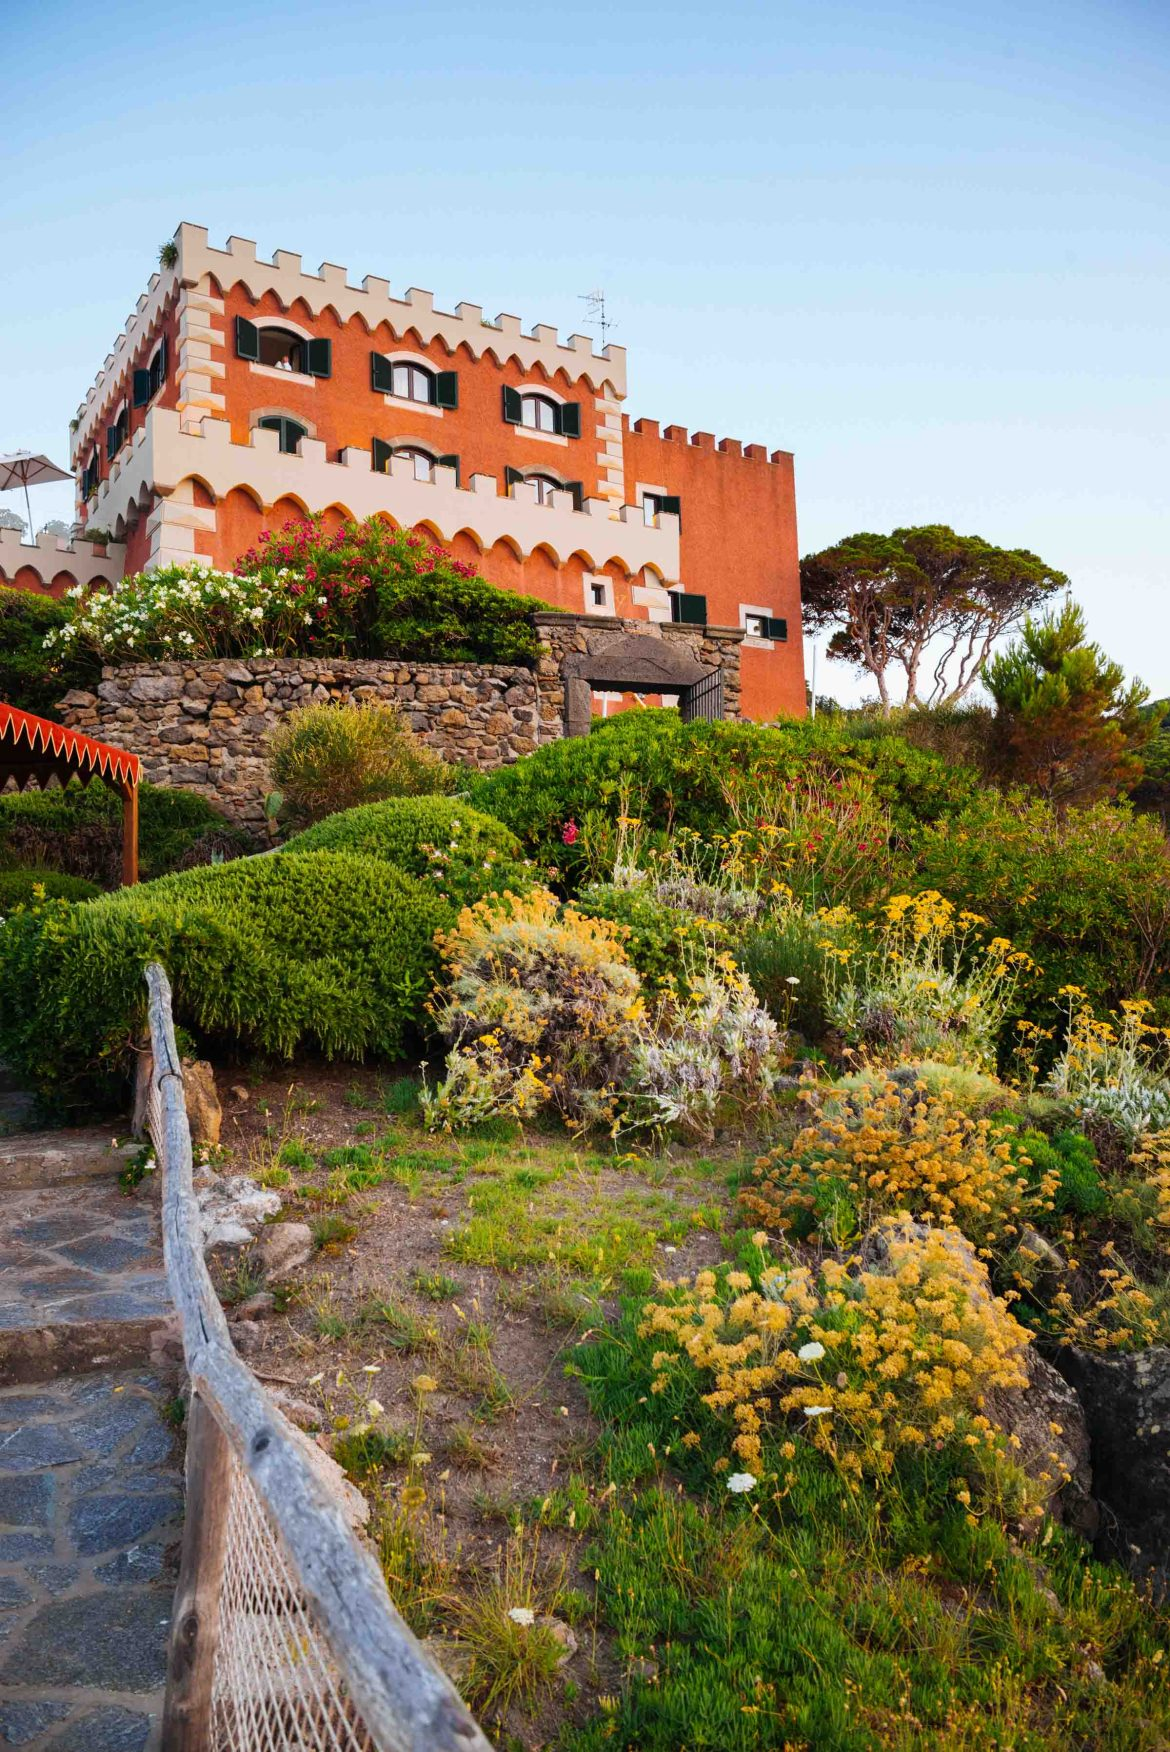 Stay at the Mezzatorre hotel in Ischia Italy on your vacation to the Amalfi Coast